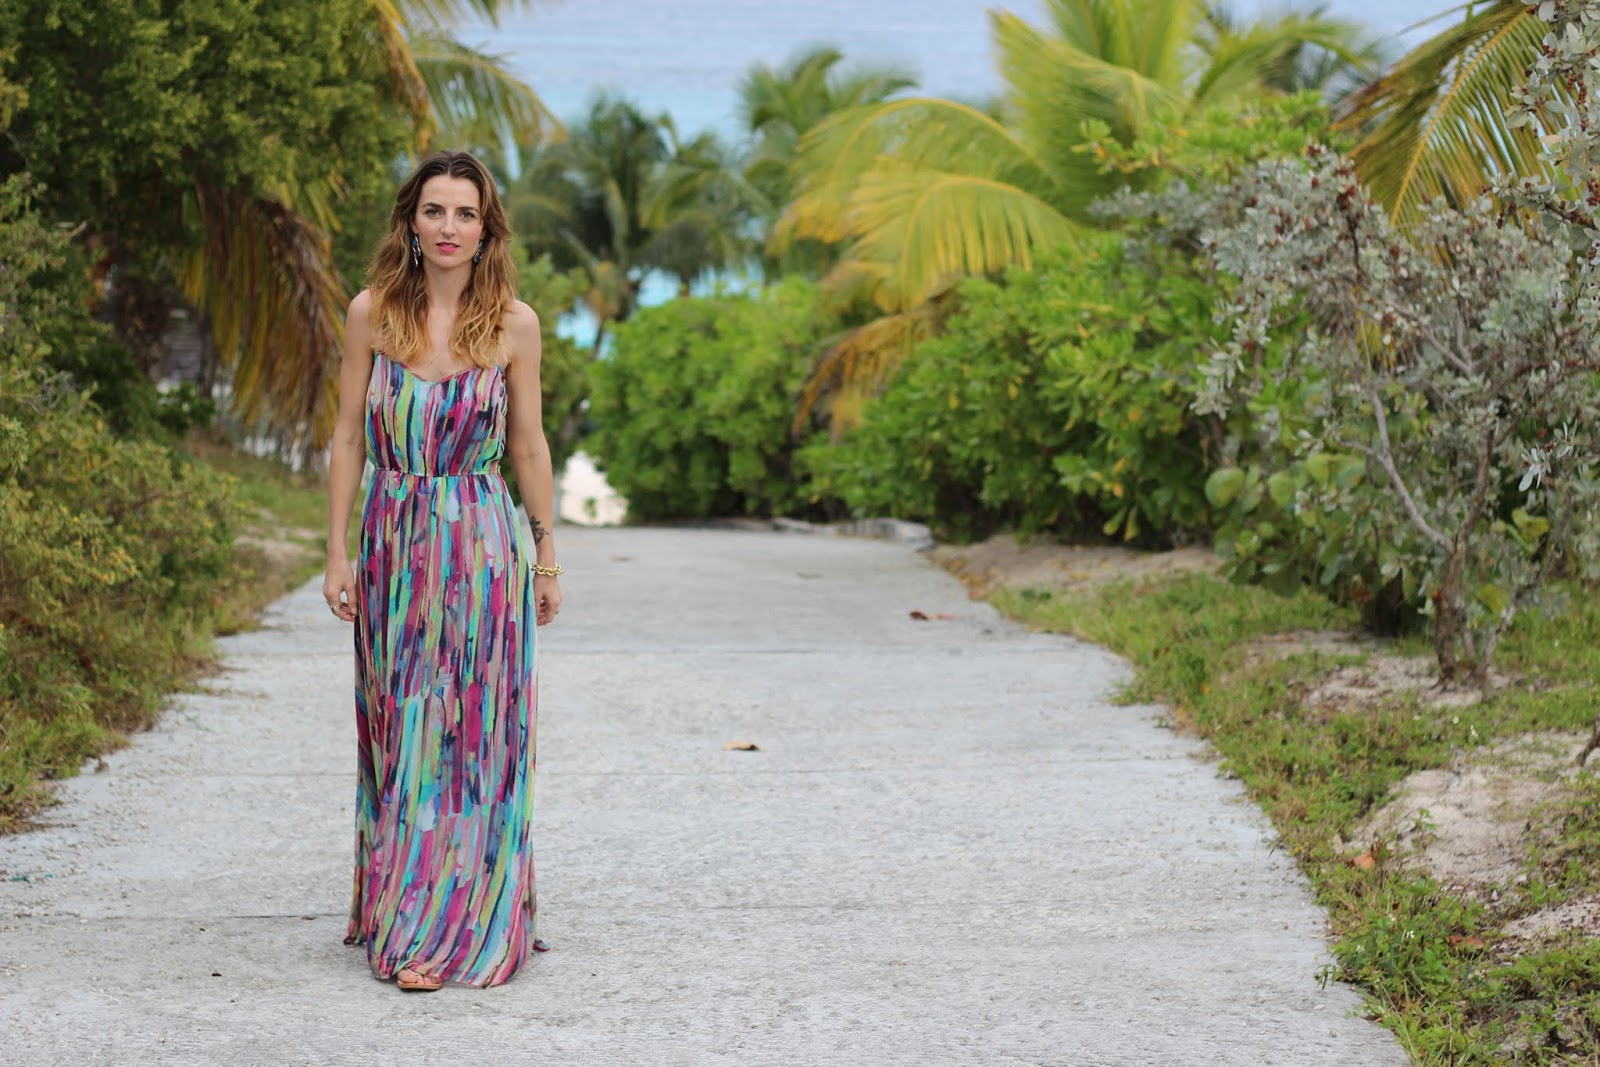 RAINBOW MAXI DRESS | Jess Ann Kirby